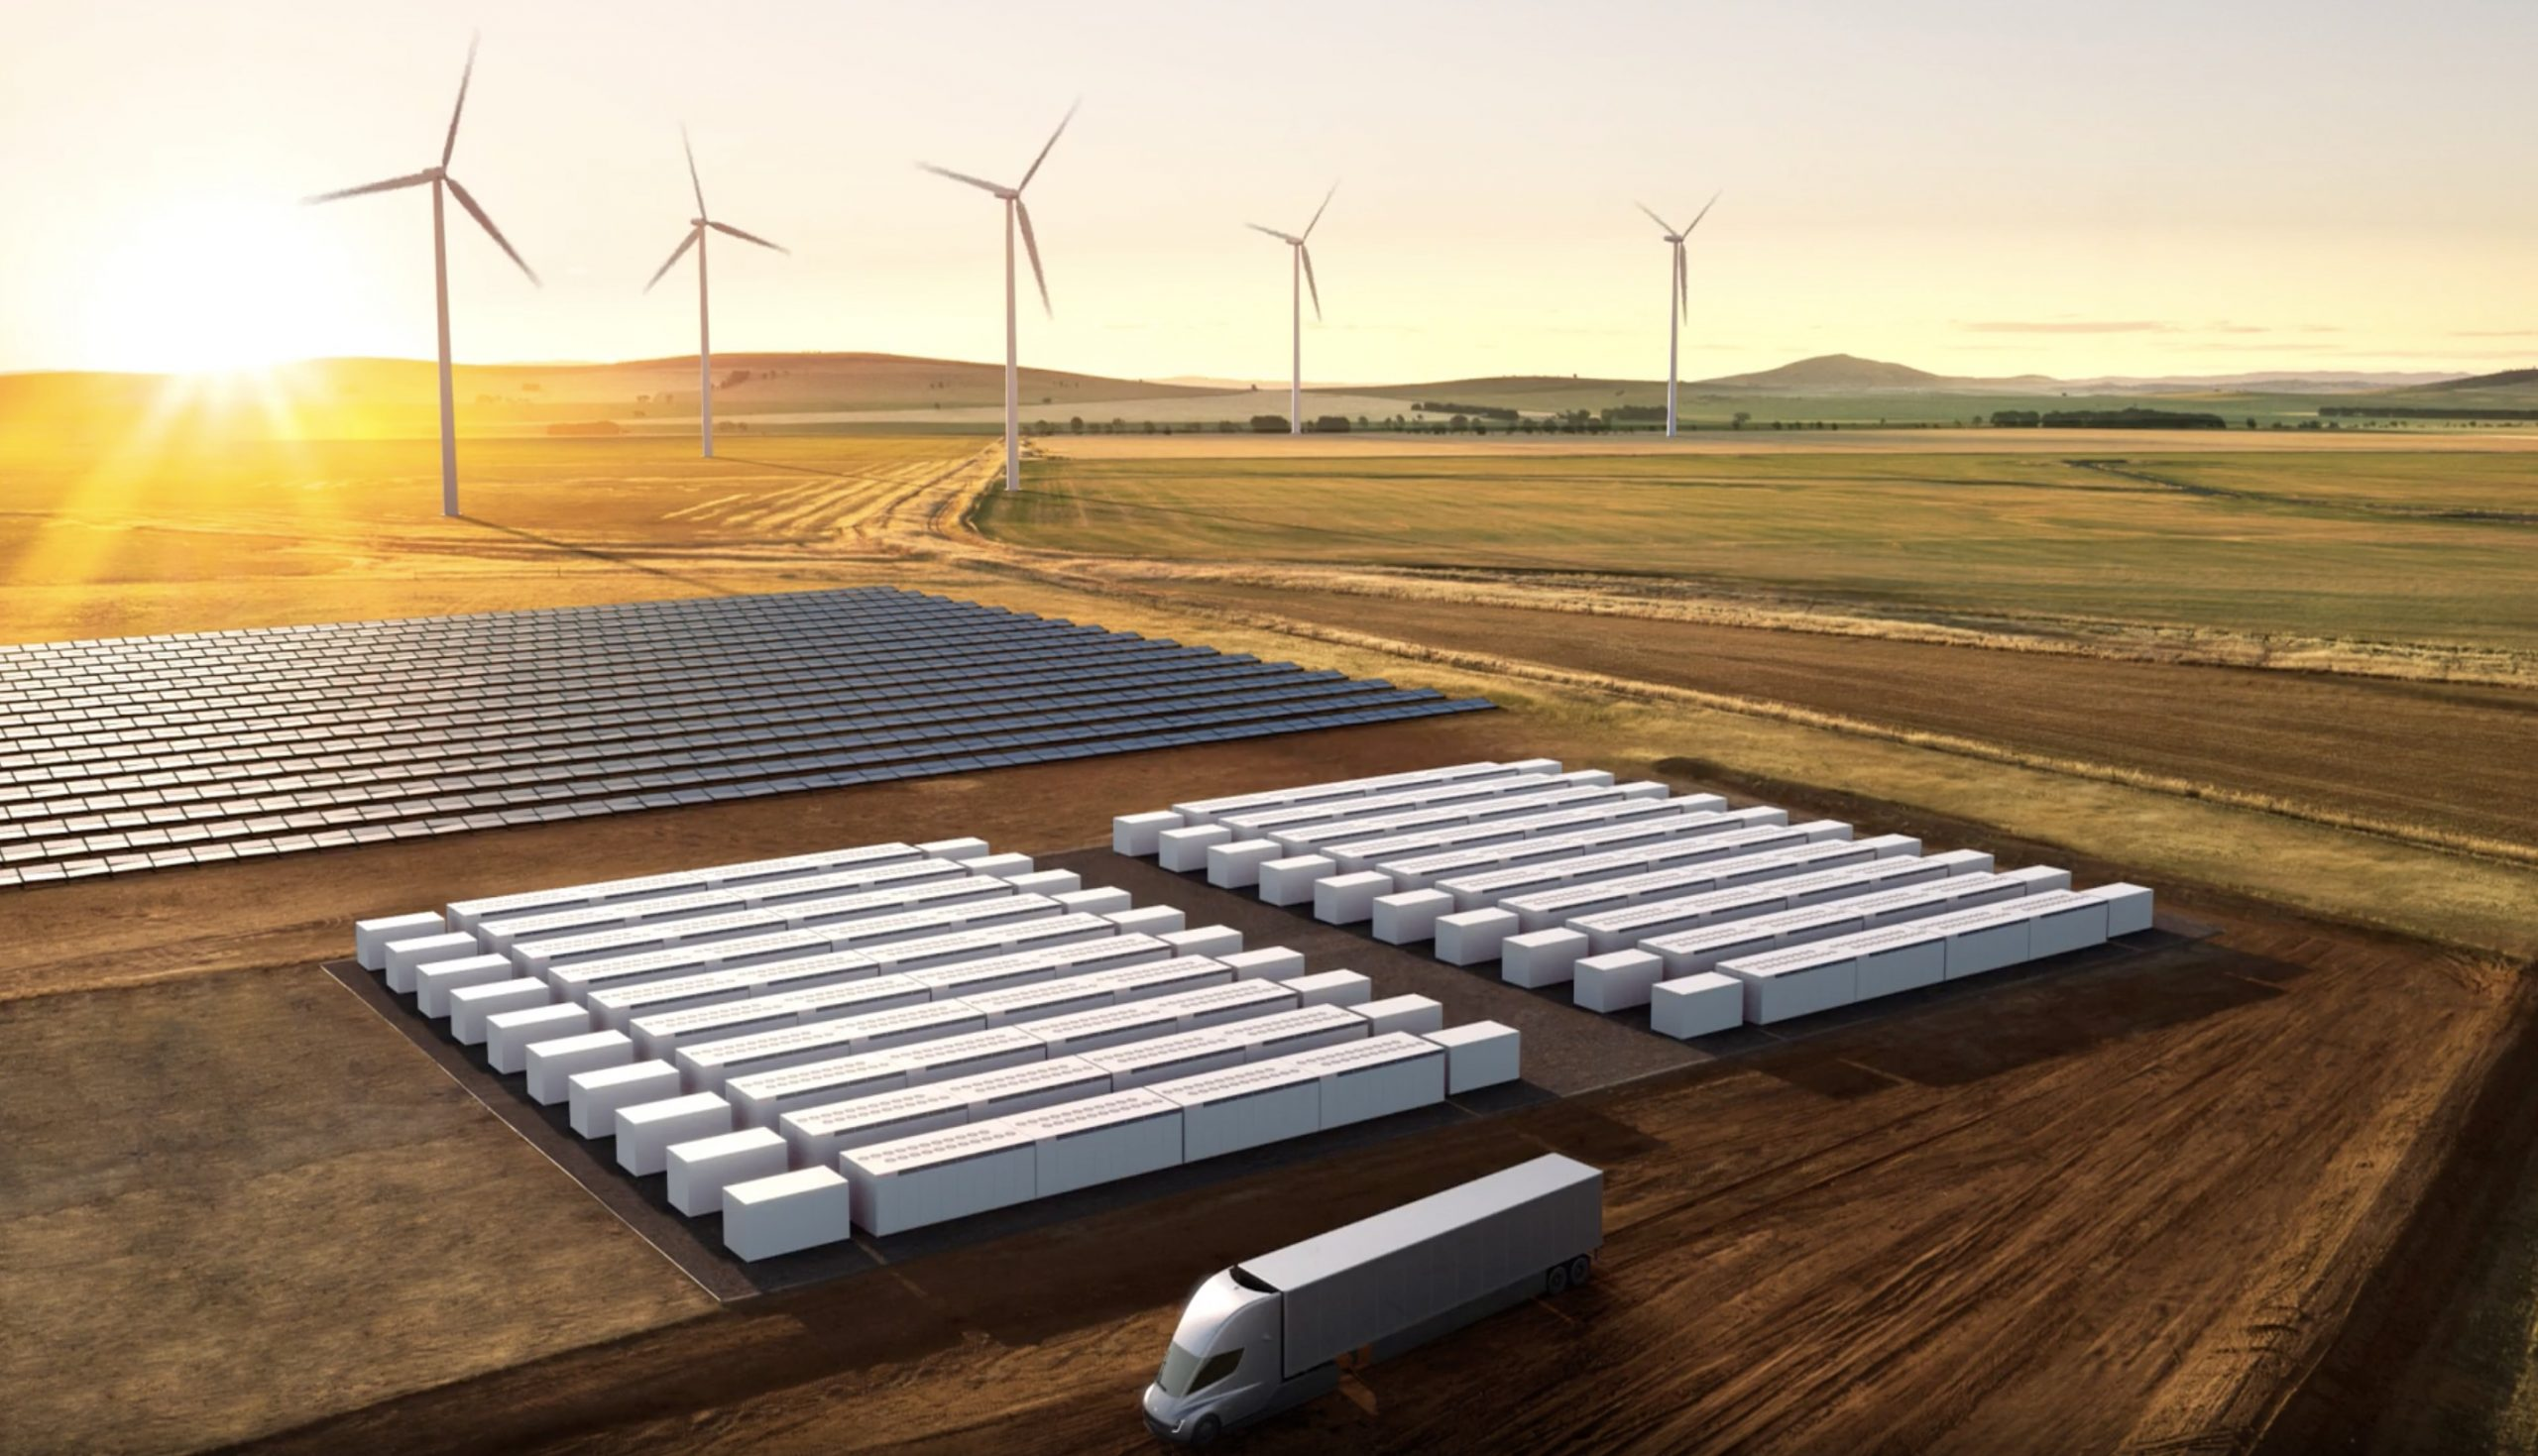 tesla-megapack-100-mw-battery-storage-project-activated-california-